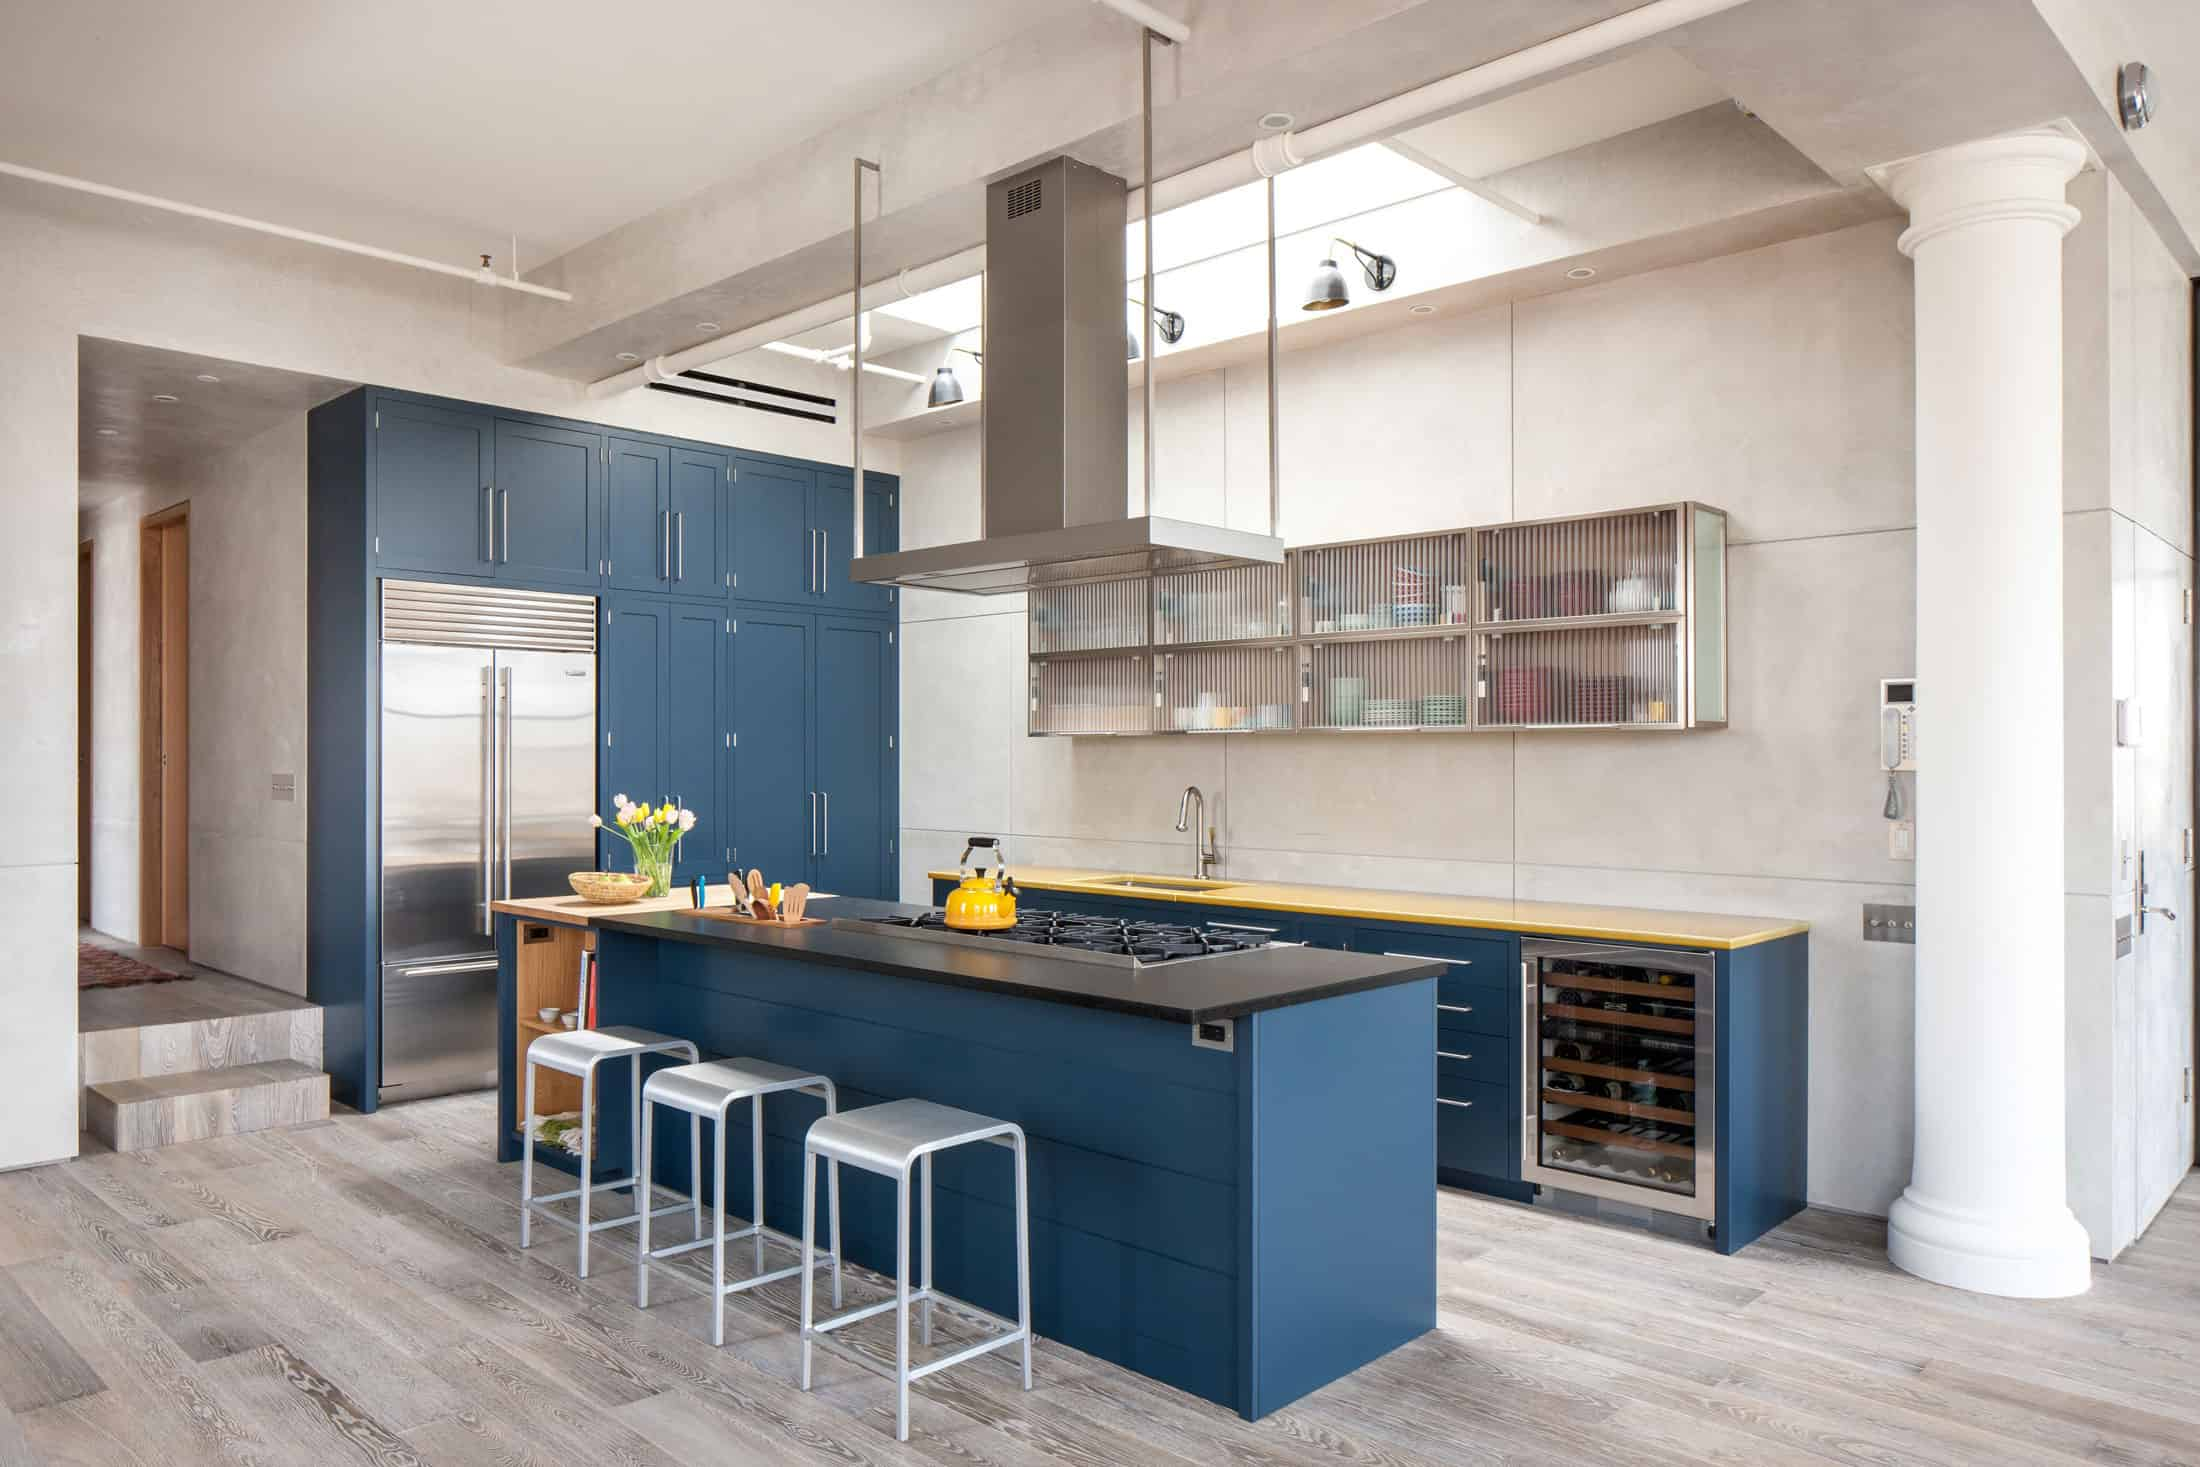 Blue Cabinets In Kitchen Royal Blue Kitchen On Light Color Floors Is A Modern